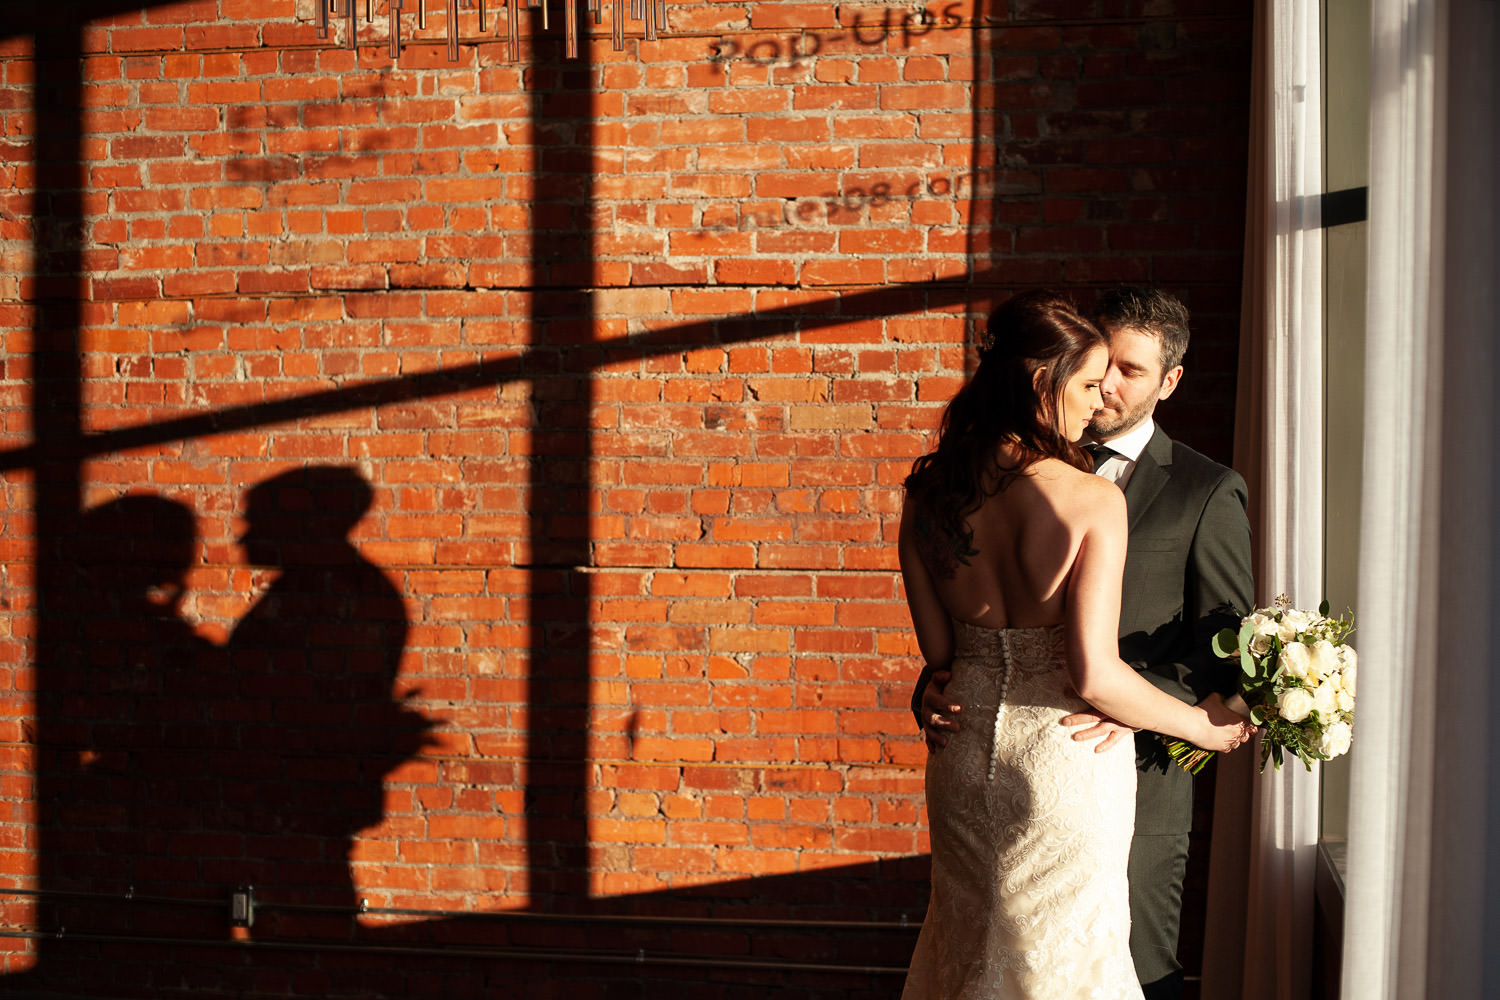 shadow of bride and groom cast on wall at Venue 308 captured by Tara Whittaker Photography